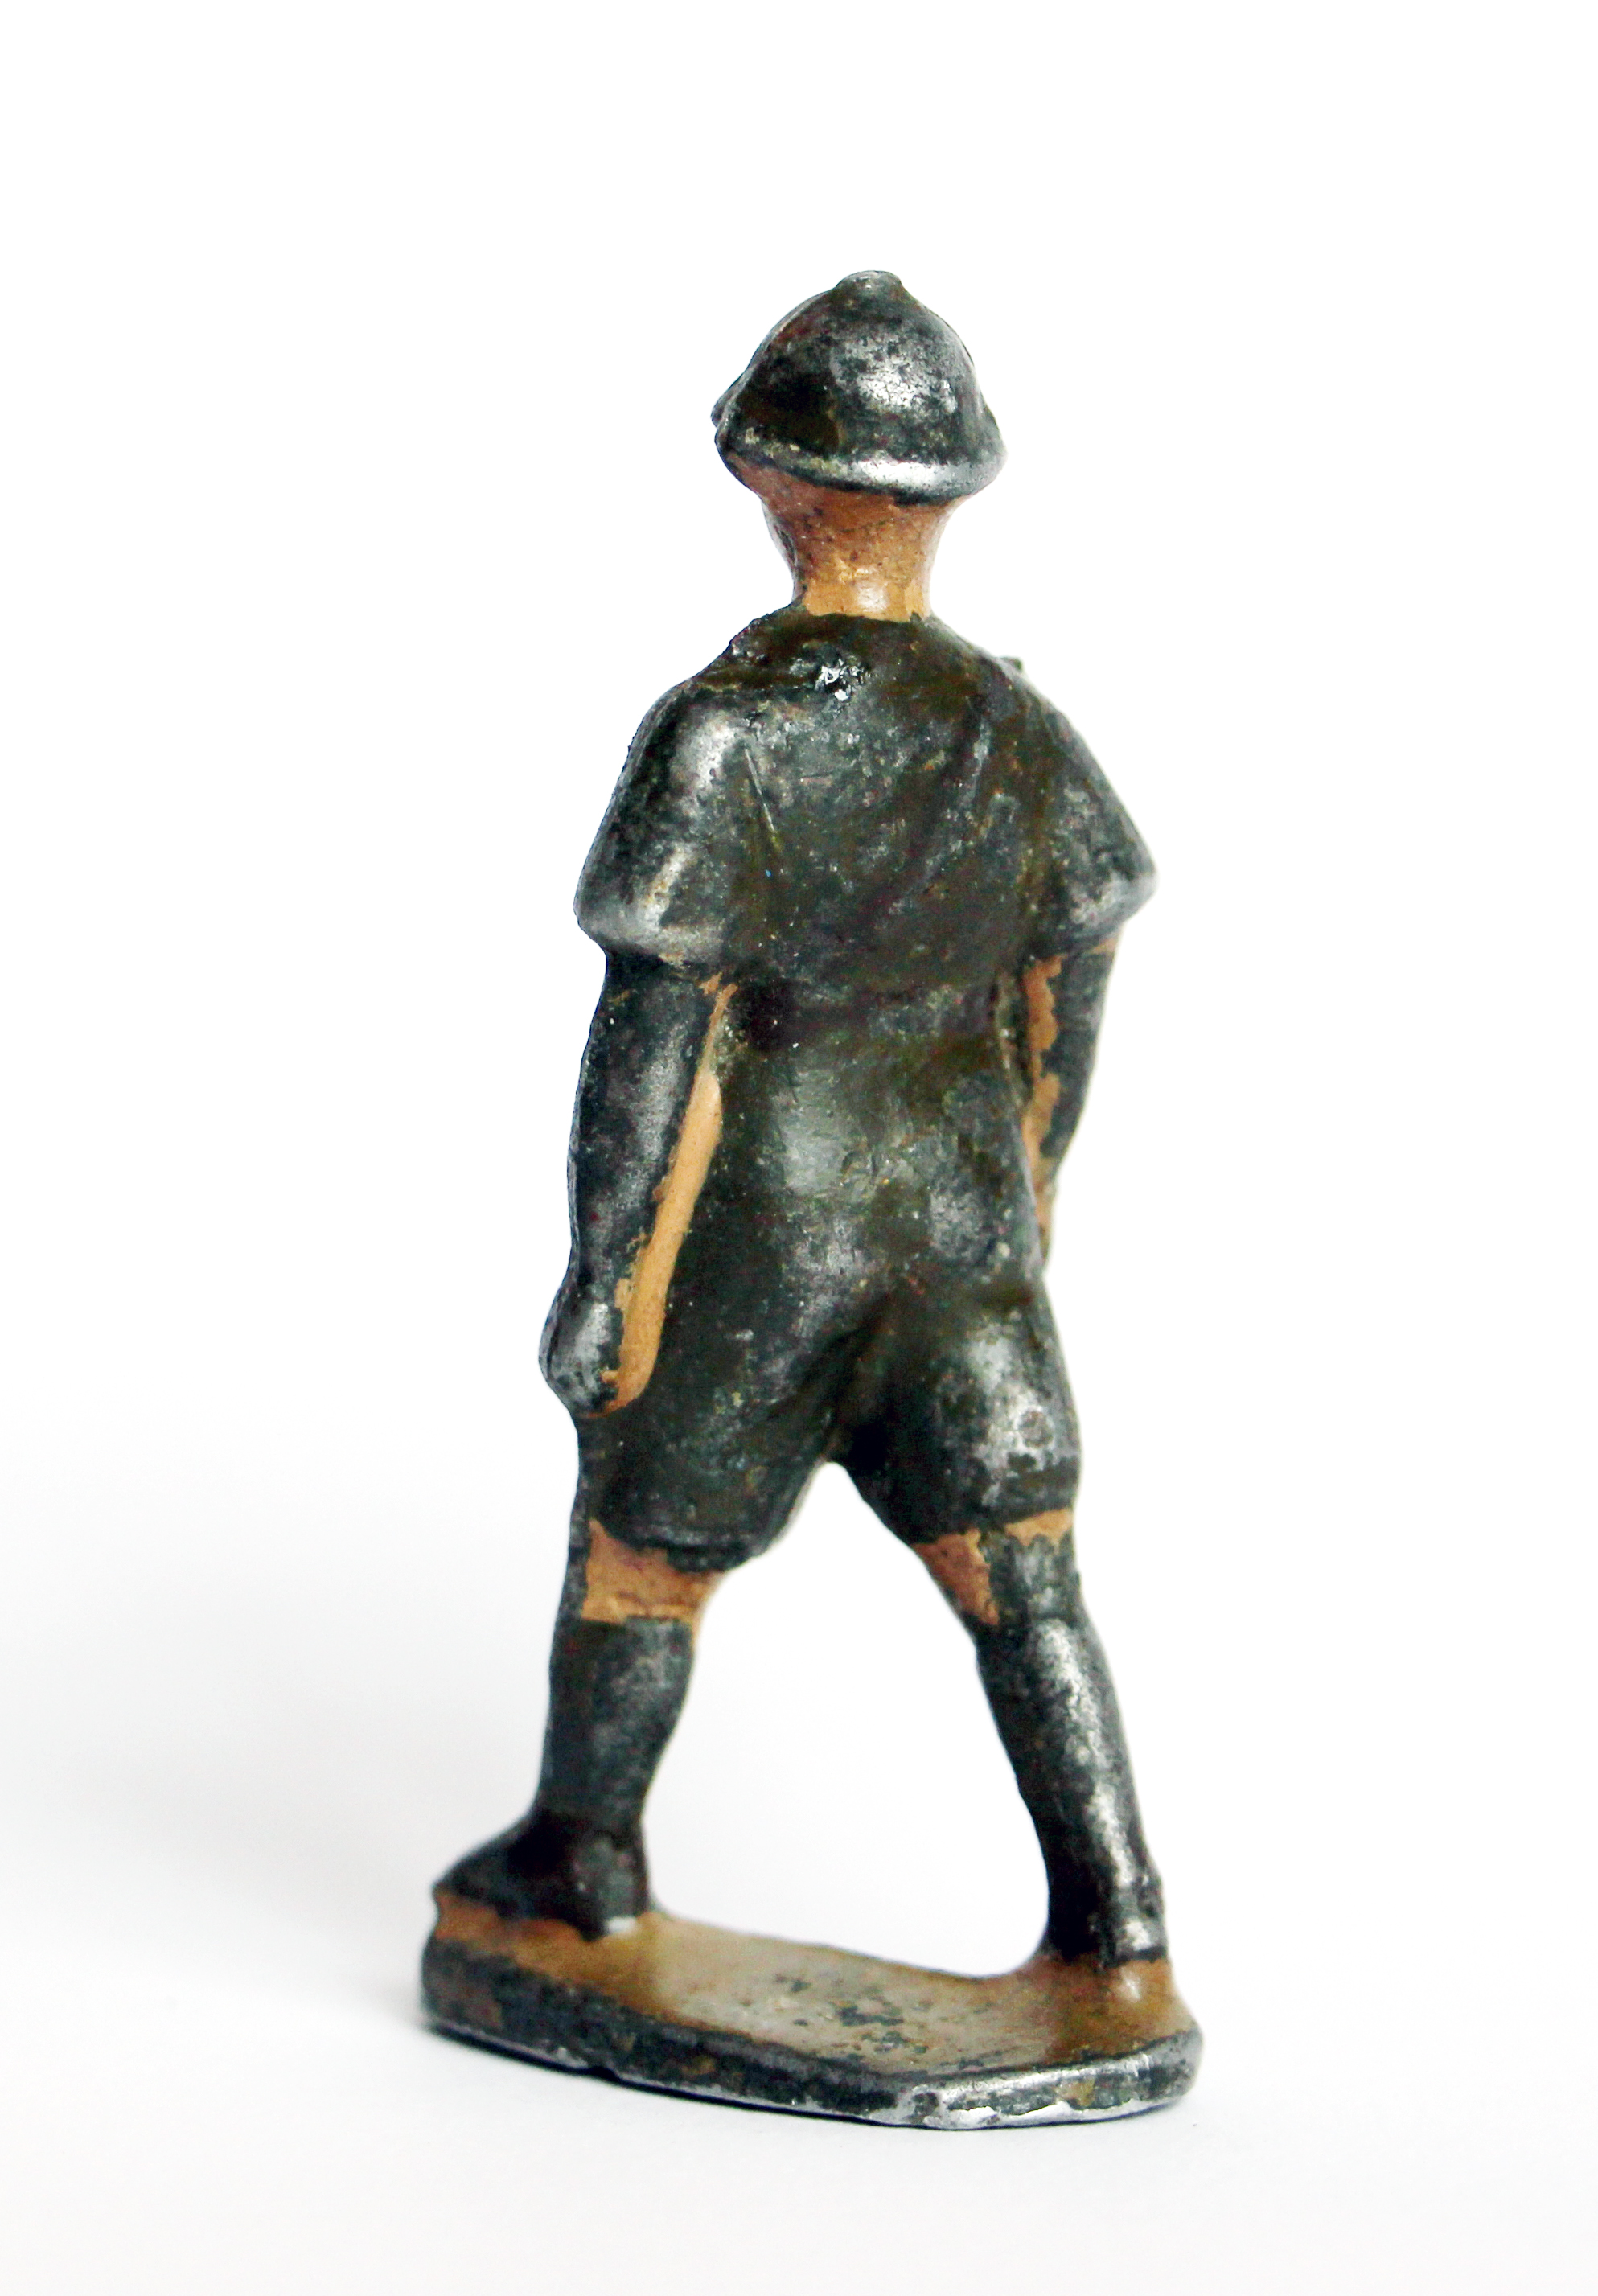 1 Figurine Quiralu Infanterie Colonie - 2nd Guerre Mondiale